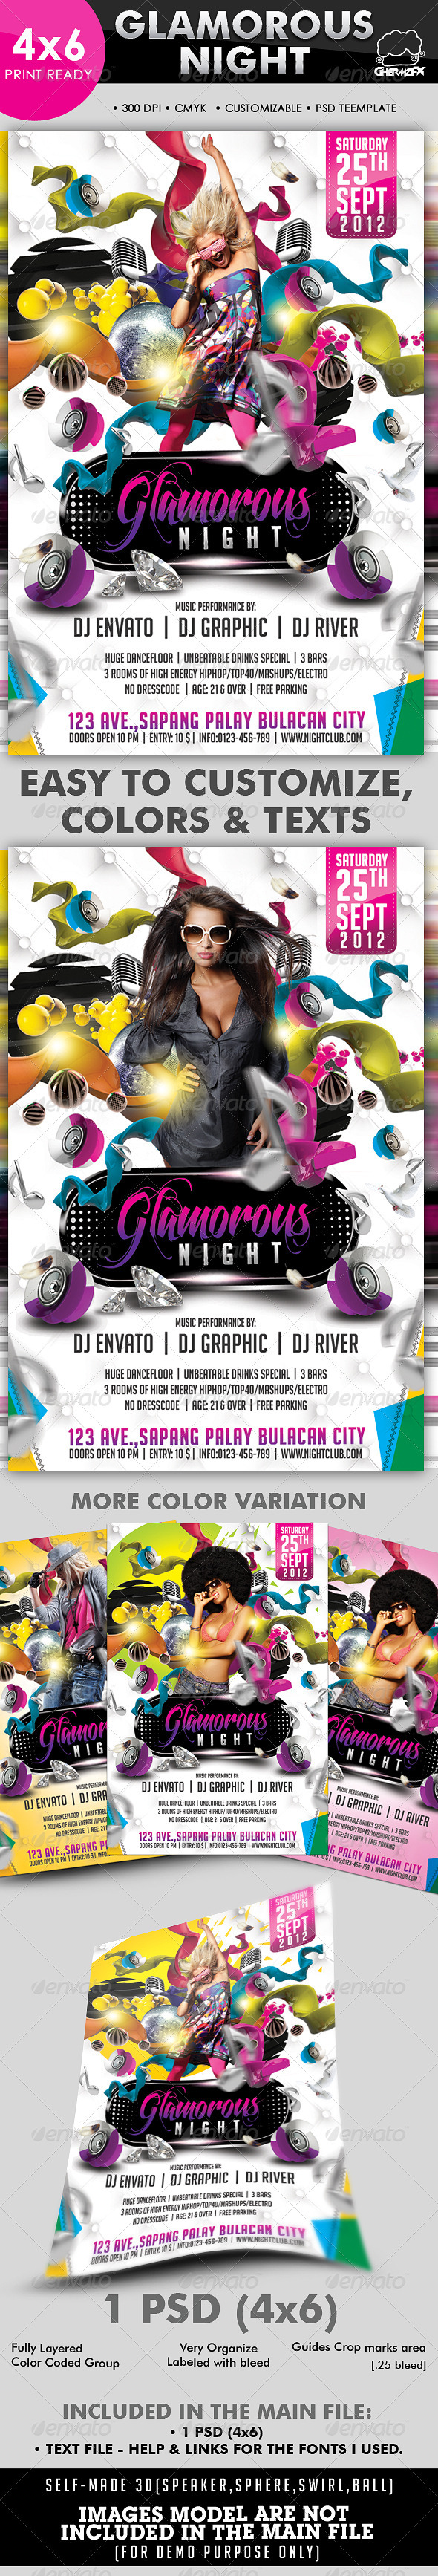 Glamorous Night Party Flyer Template - Clubs & Parties Events